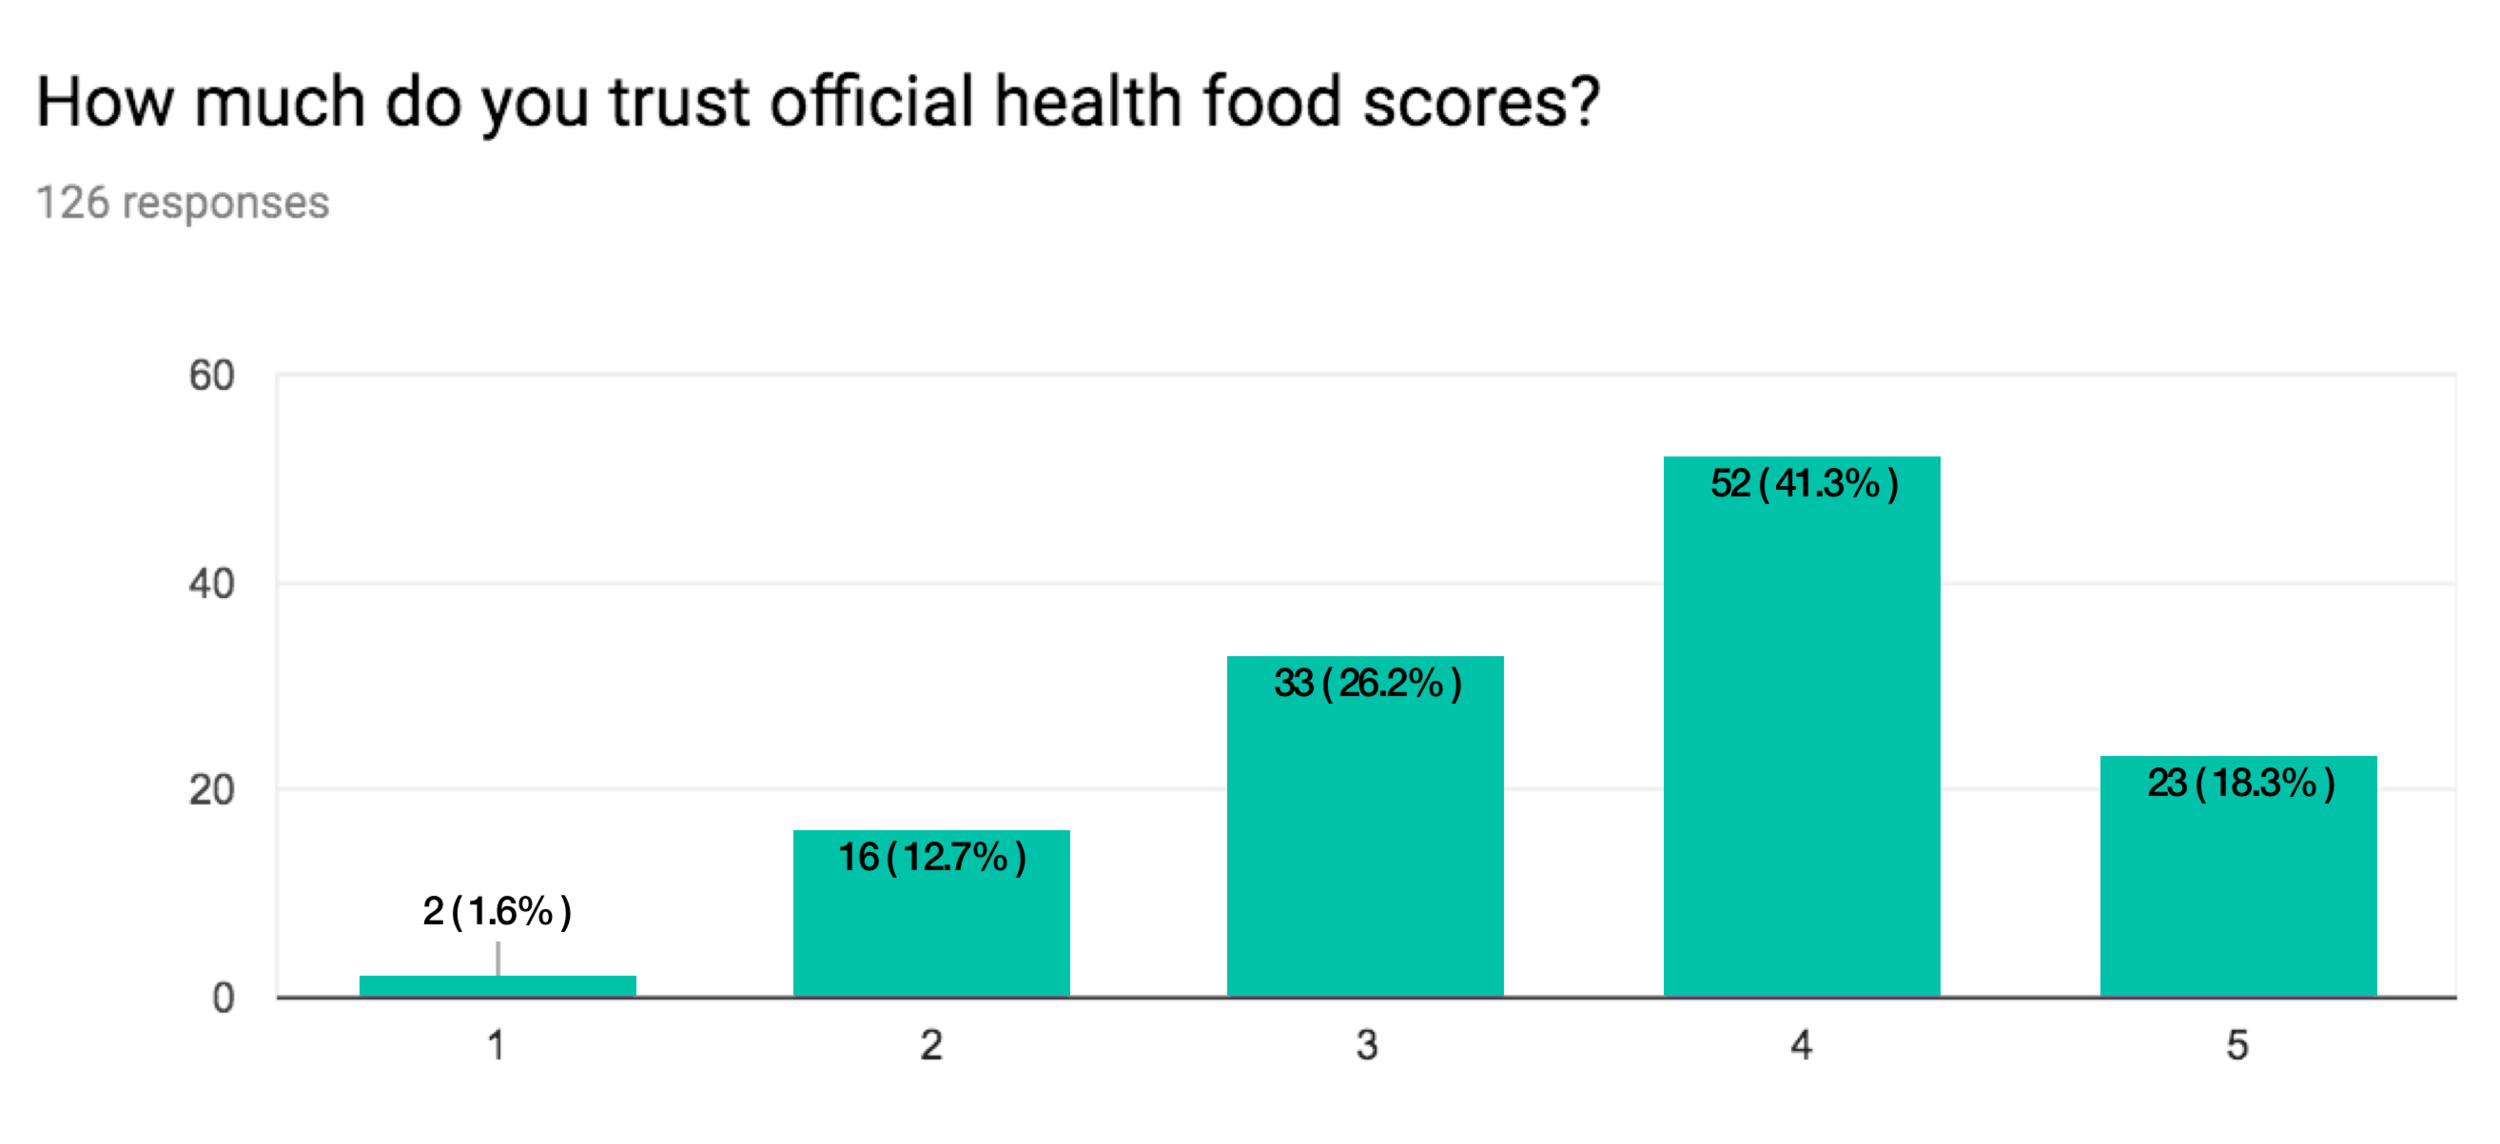 Trustofhealthscores1.png